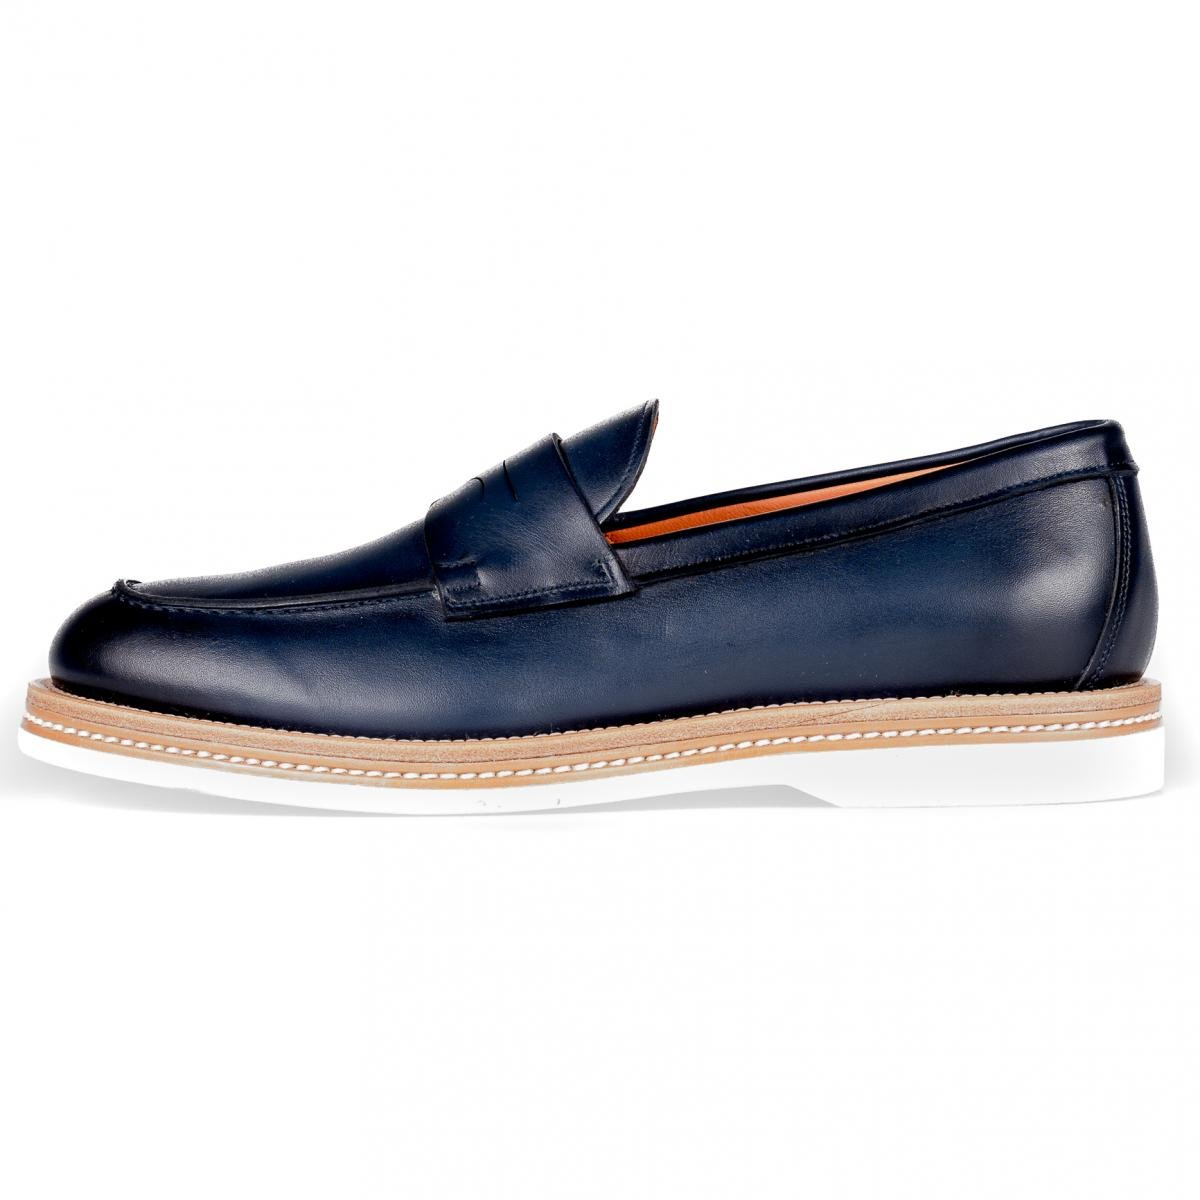 Mocassino UOMO Santoni Blue Pelle Made IN Italy MGMN12940JM3IGTUU44 8.5